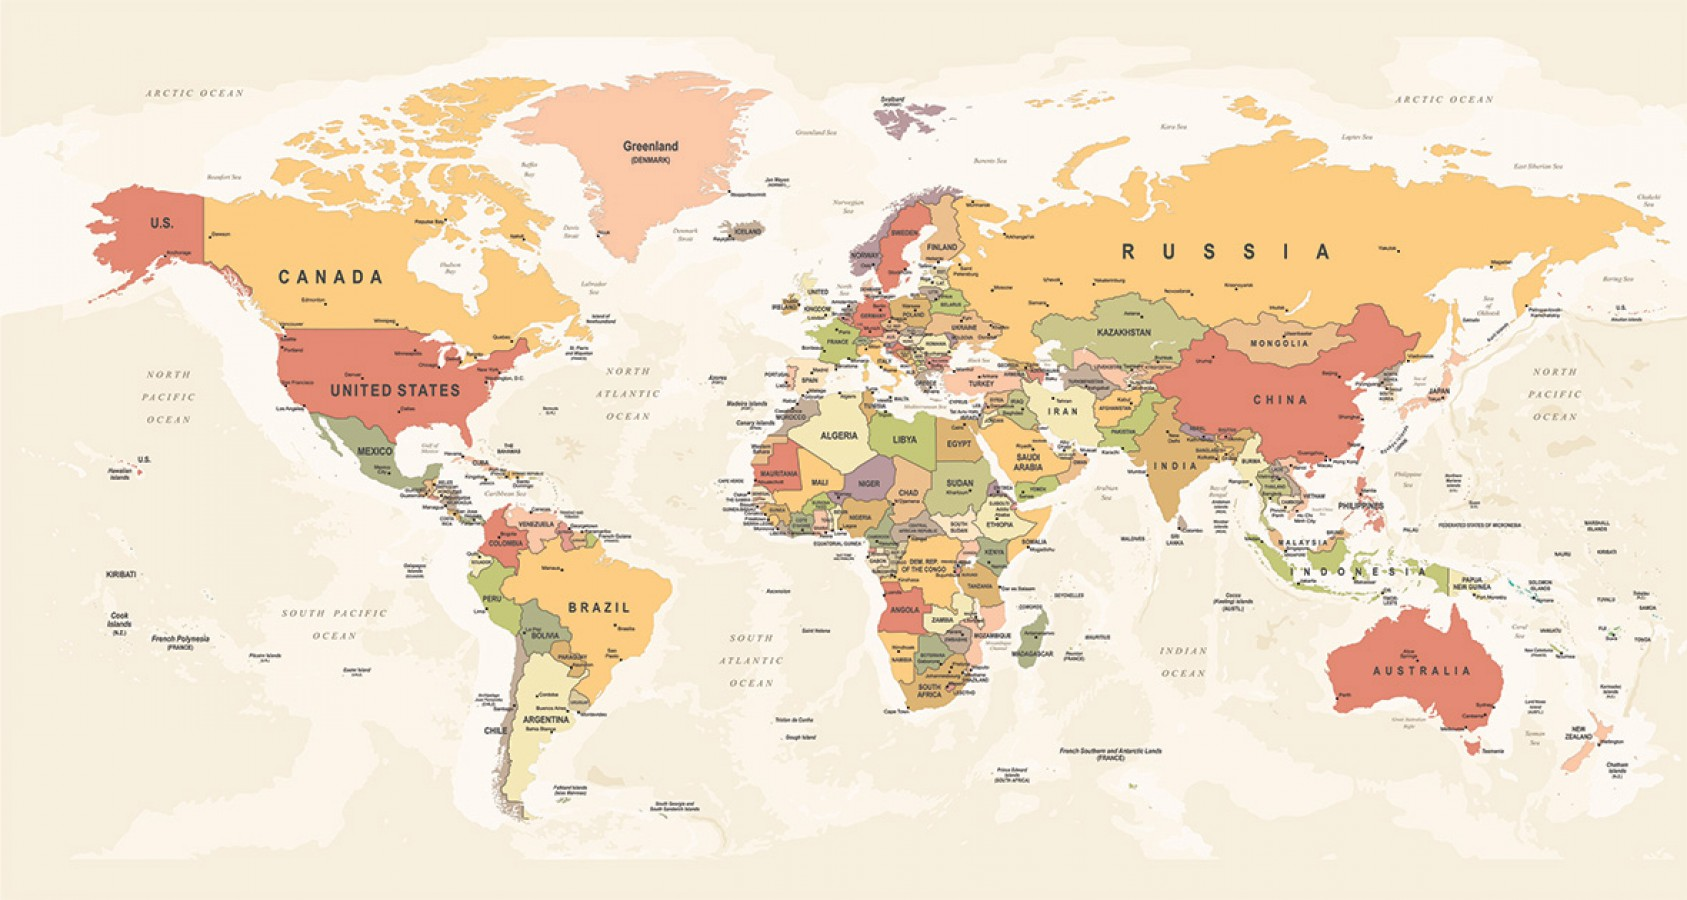 Fotomural Countries World Map 4 A08-M904 Fotomural Countries World Map 4 A08-M904